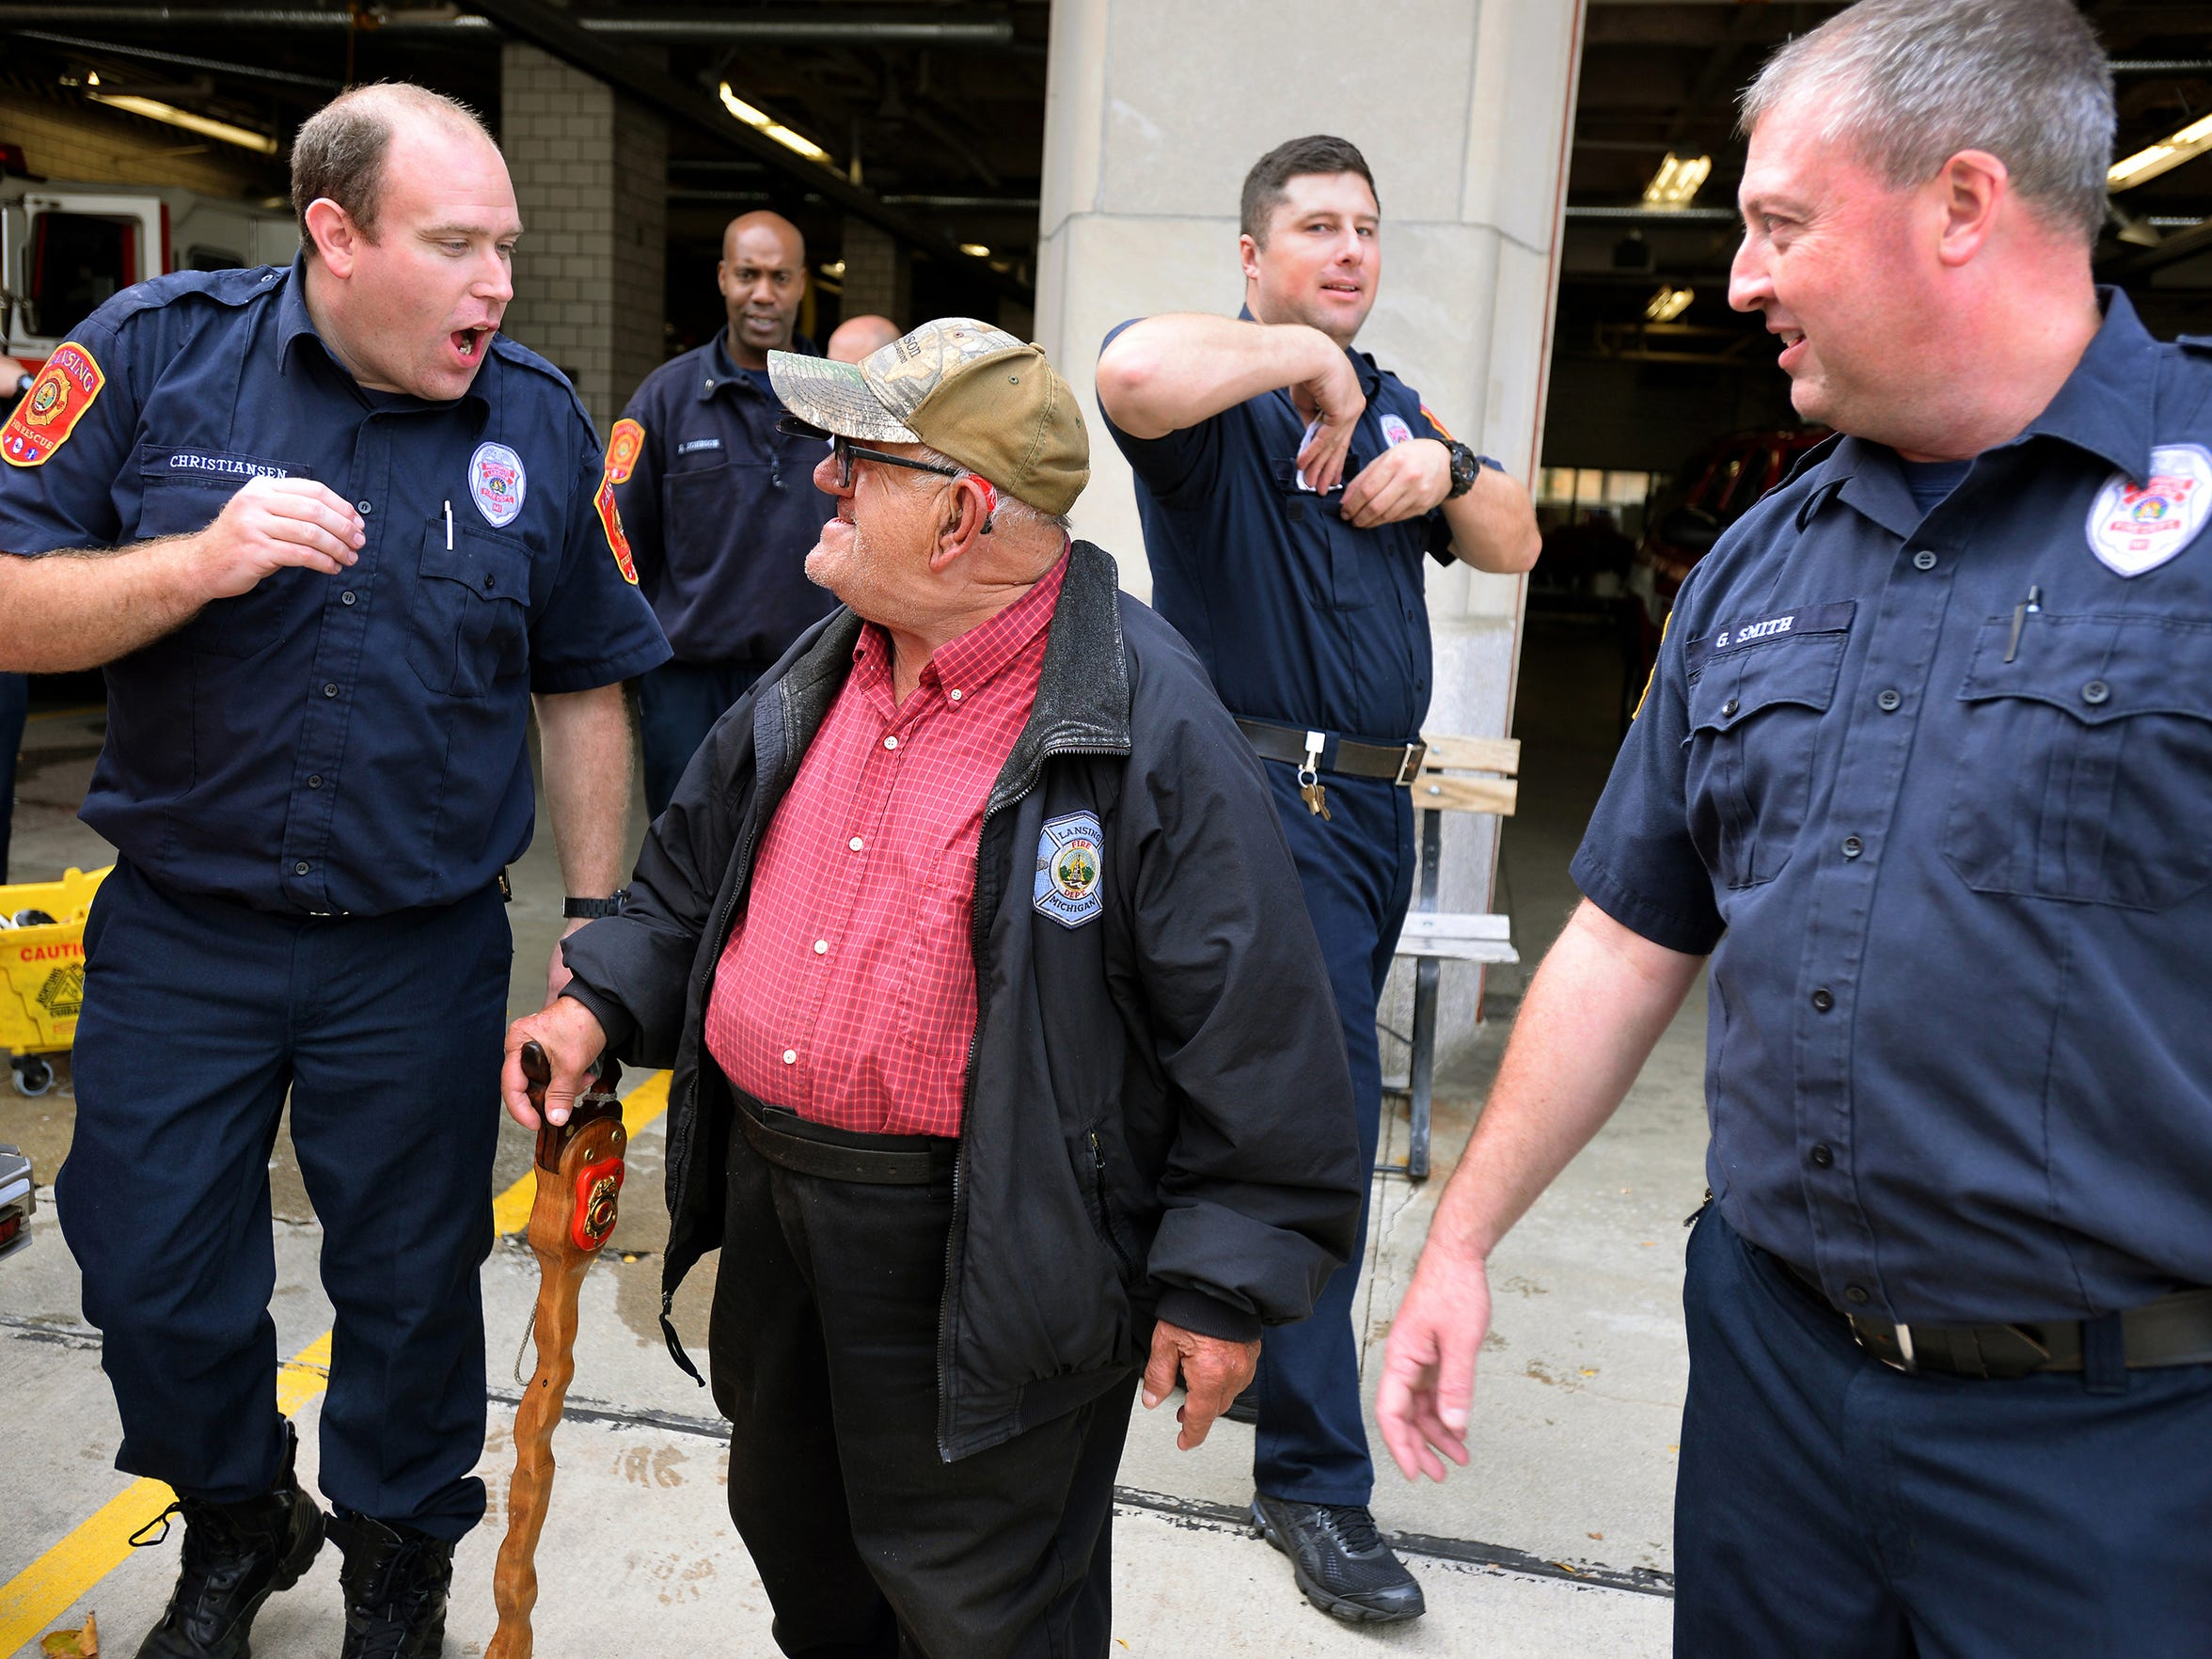 Tony Tumminello, 75, hangs out with the firefighters at Lansing's Fire Station One including Bill Christiansen, left, and Greg Smith, right, recently.